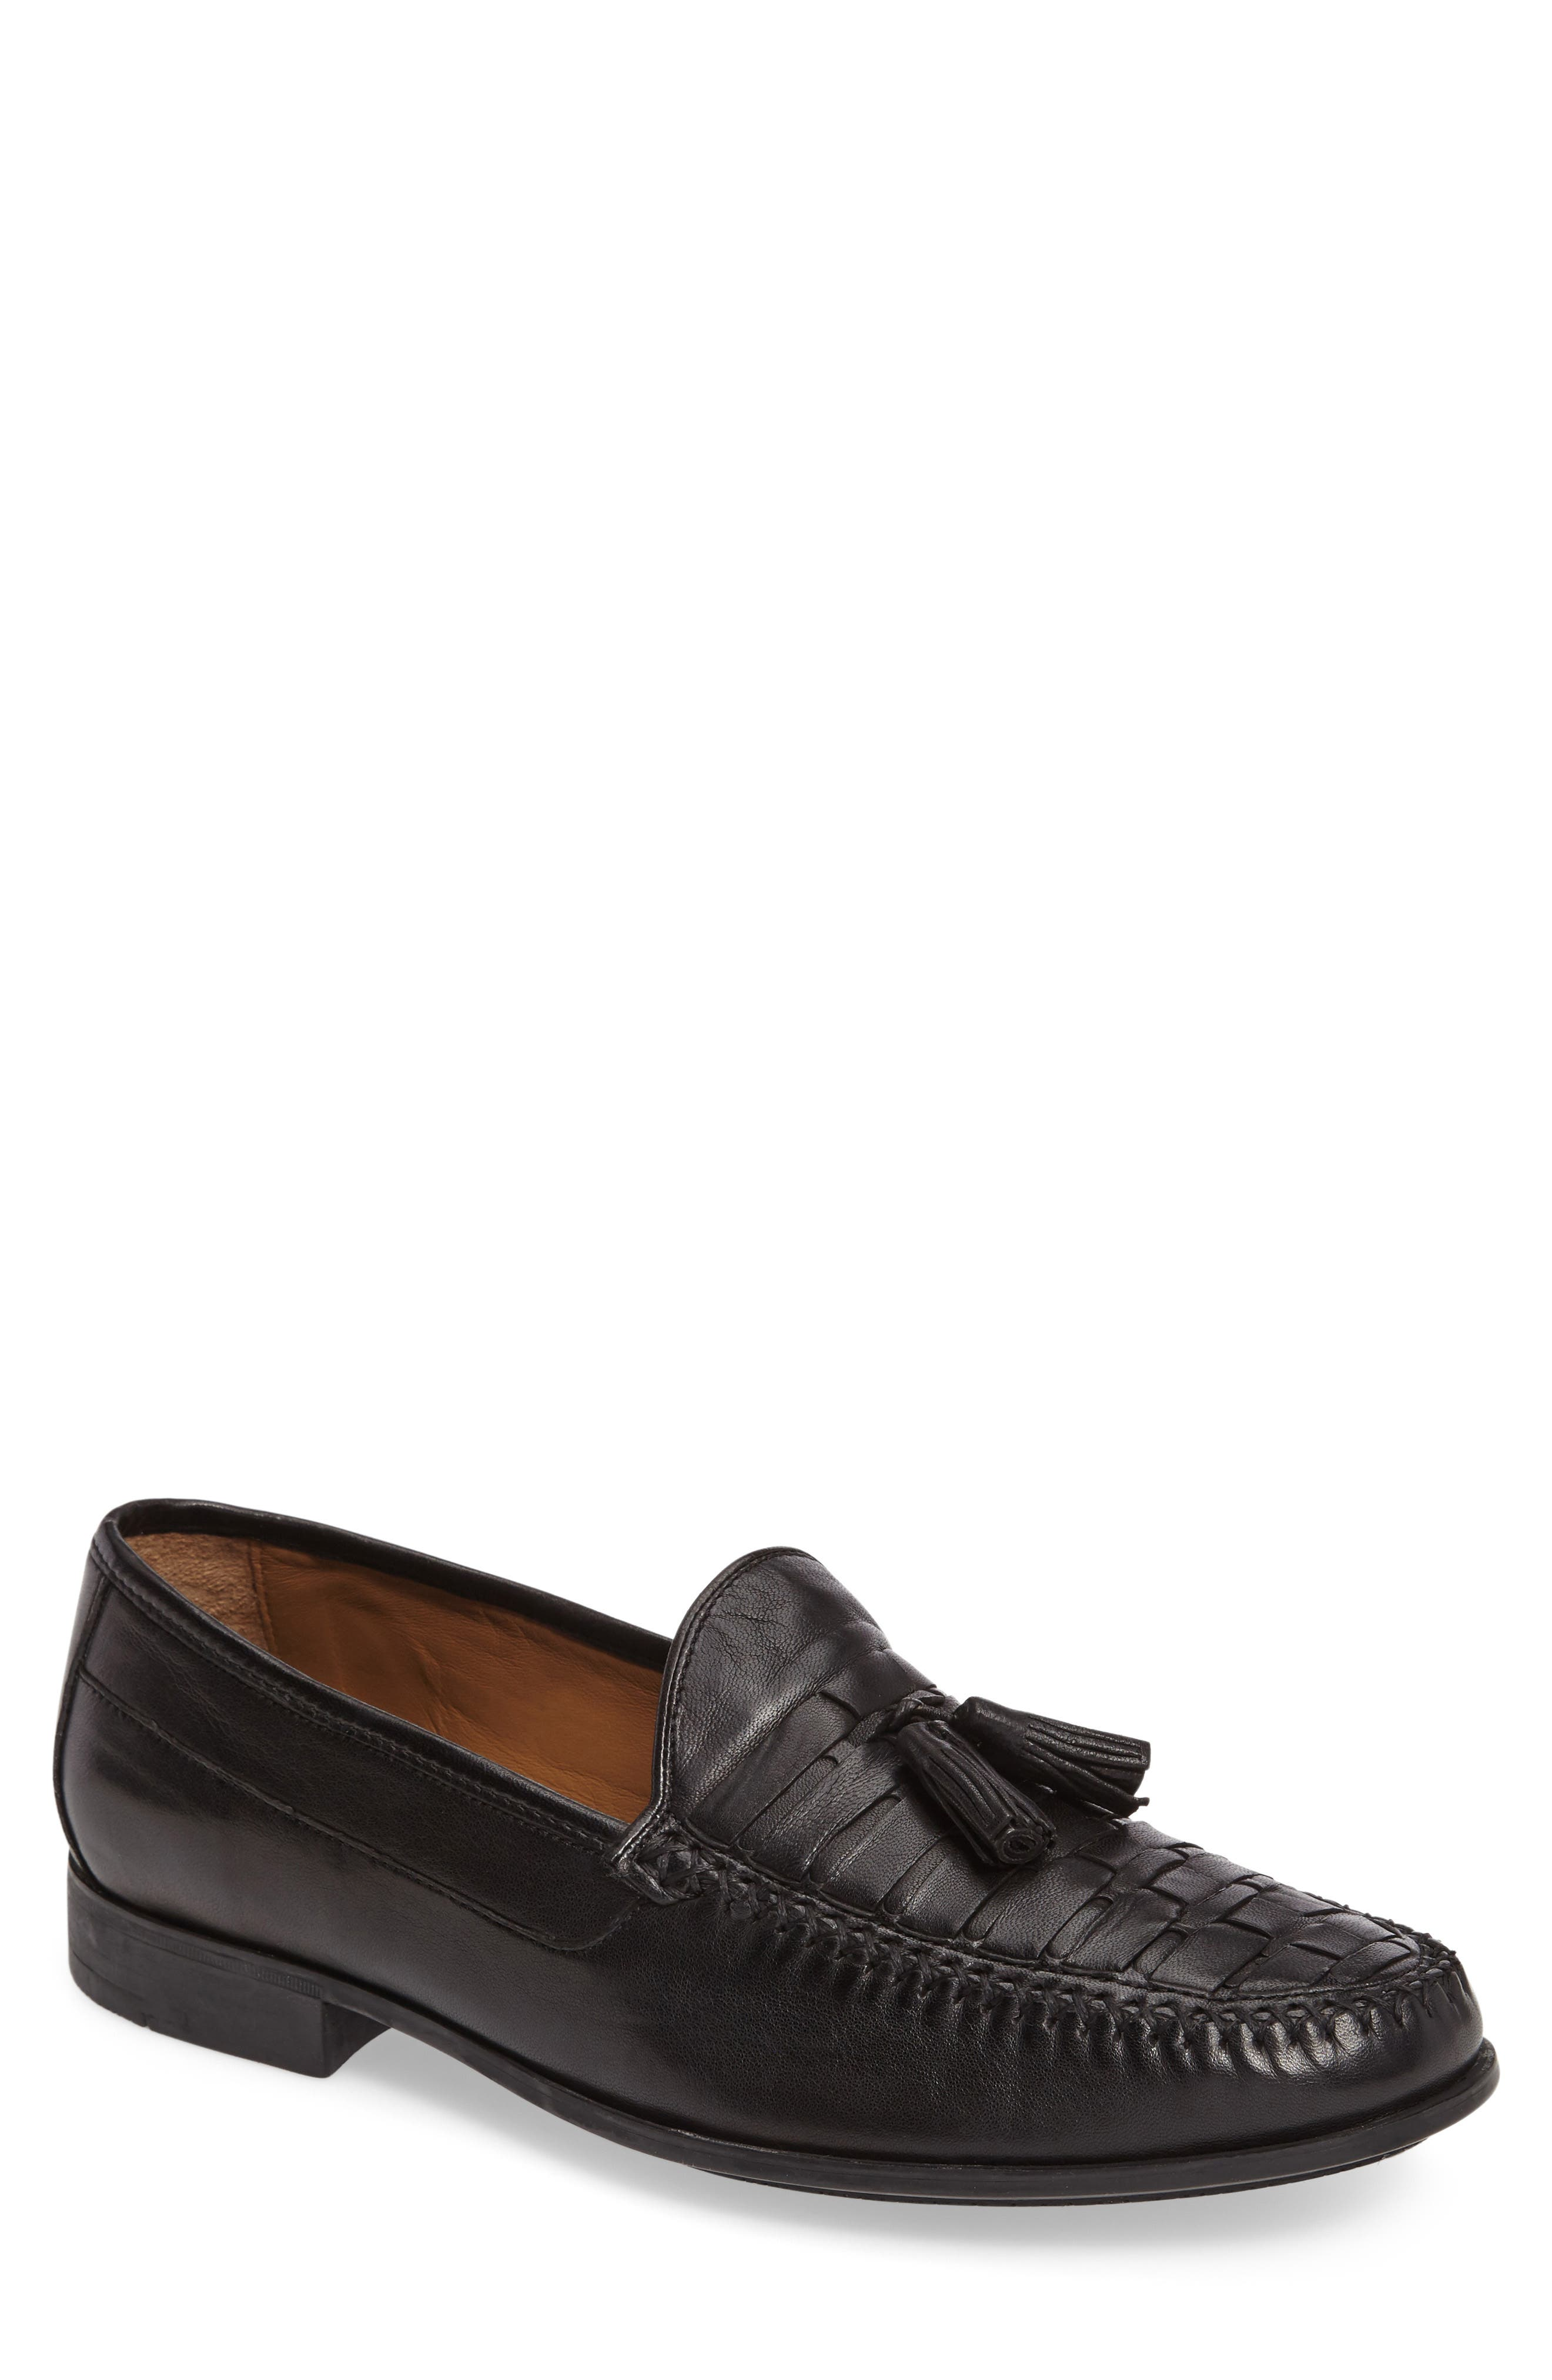 Cresswell Woven Tassel Loafer,                         Main,                         color, 001